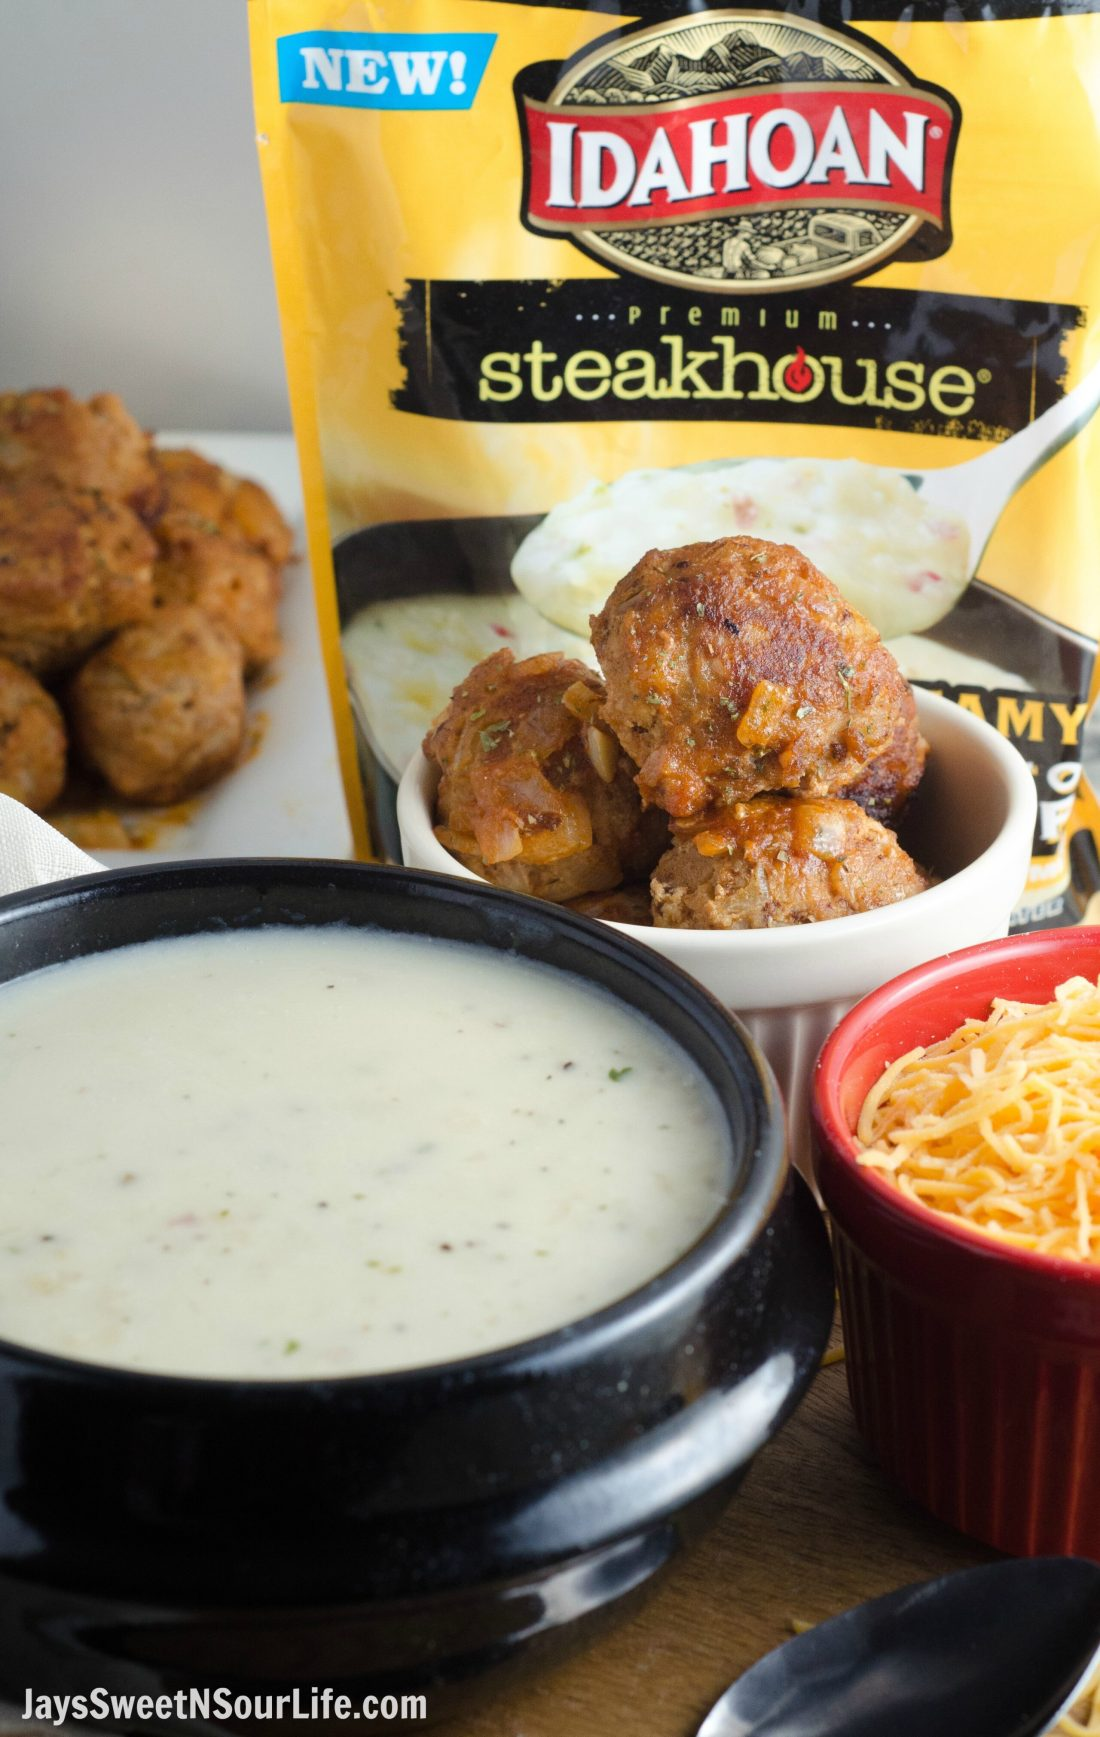 This sweet and sour turkey meatball is an easy 10 minute dinner option. Make ahead and freeze for future meals. Serve with the New Idahoan Steakhouse Soups, dip and devour for a tasty dinner. Top your soup with Cheddar cheese and dip away.